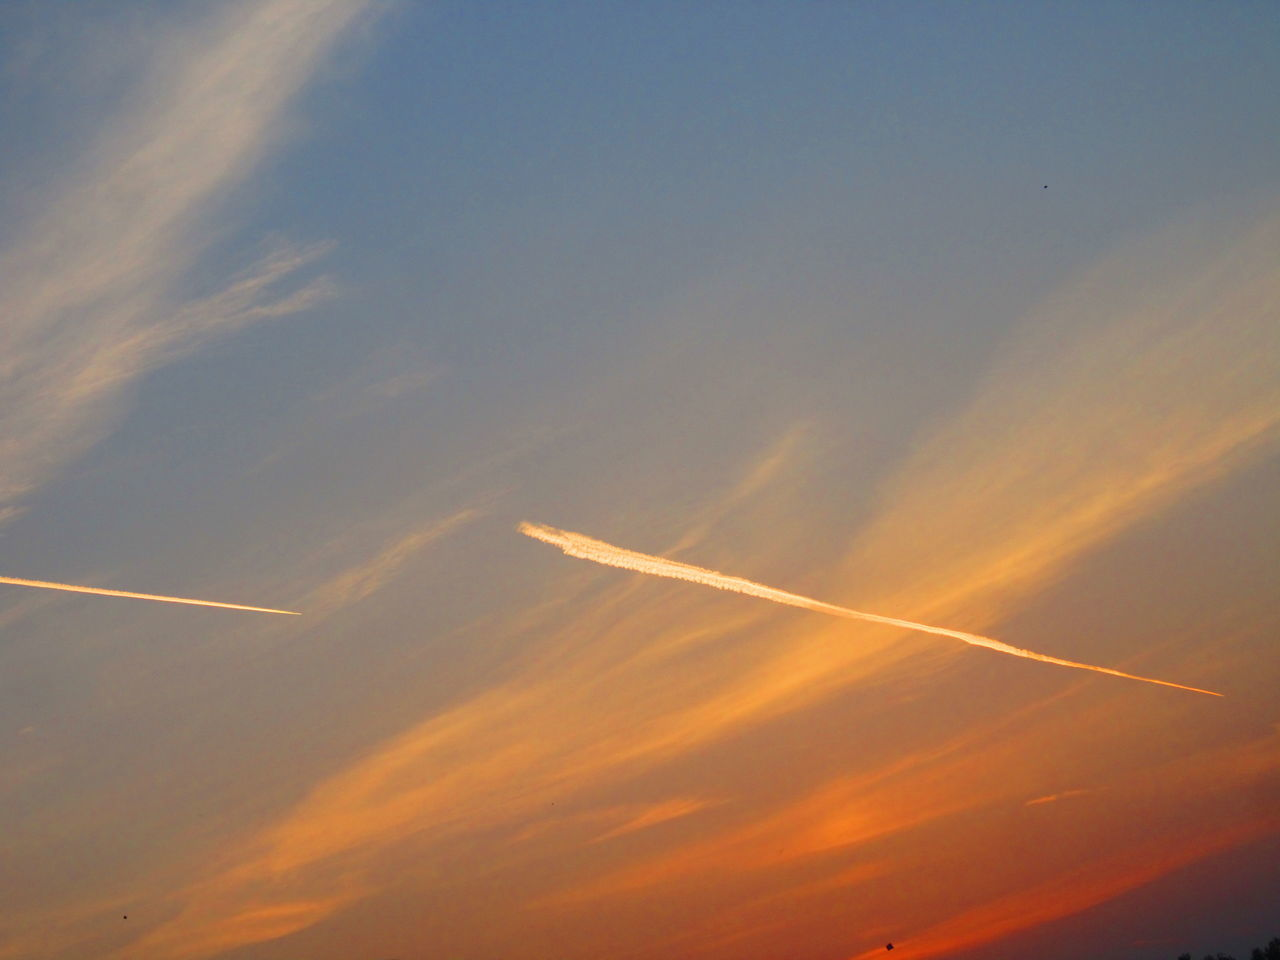 vapor trail, contrail, scenics, majestic, low angle view, nature, beauty in nature, sky, no people, outdoors, tranquility, sunset, day